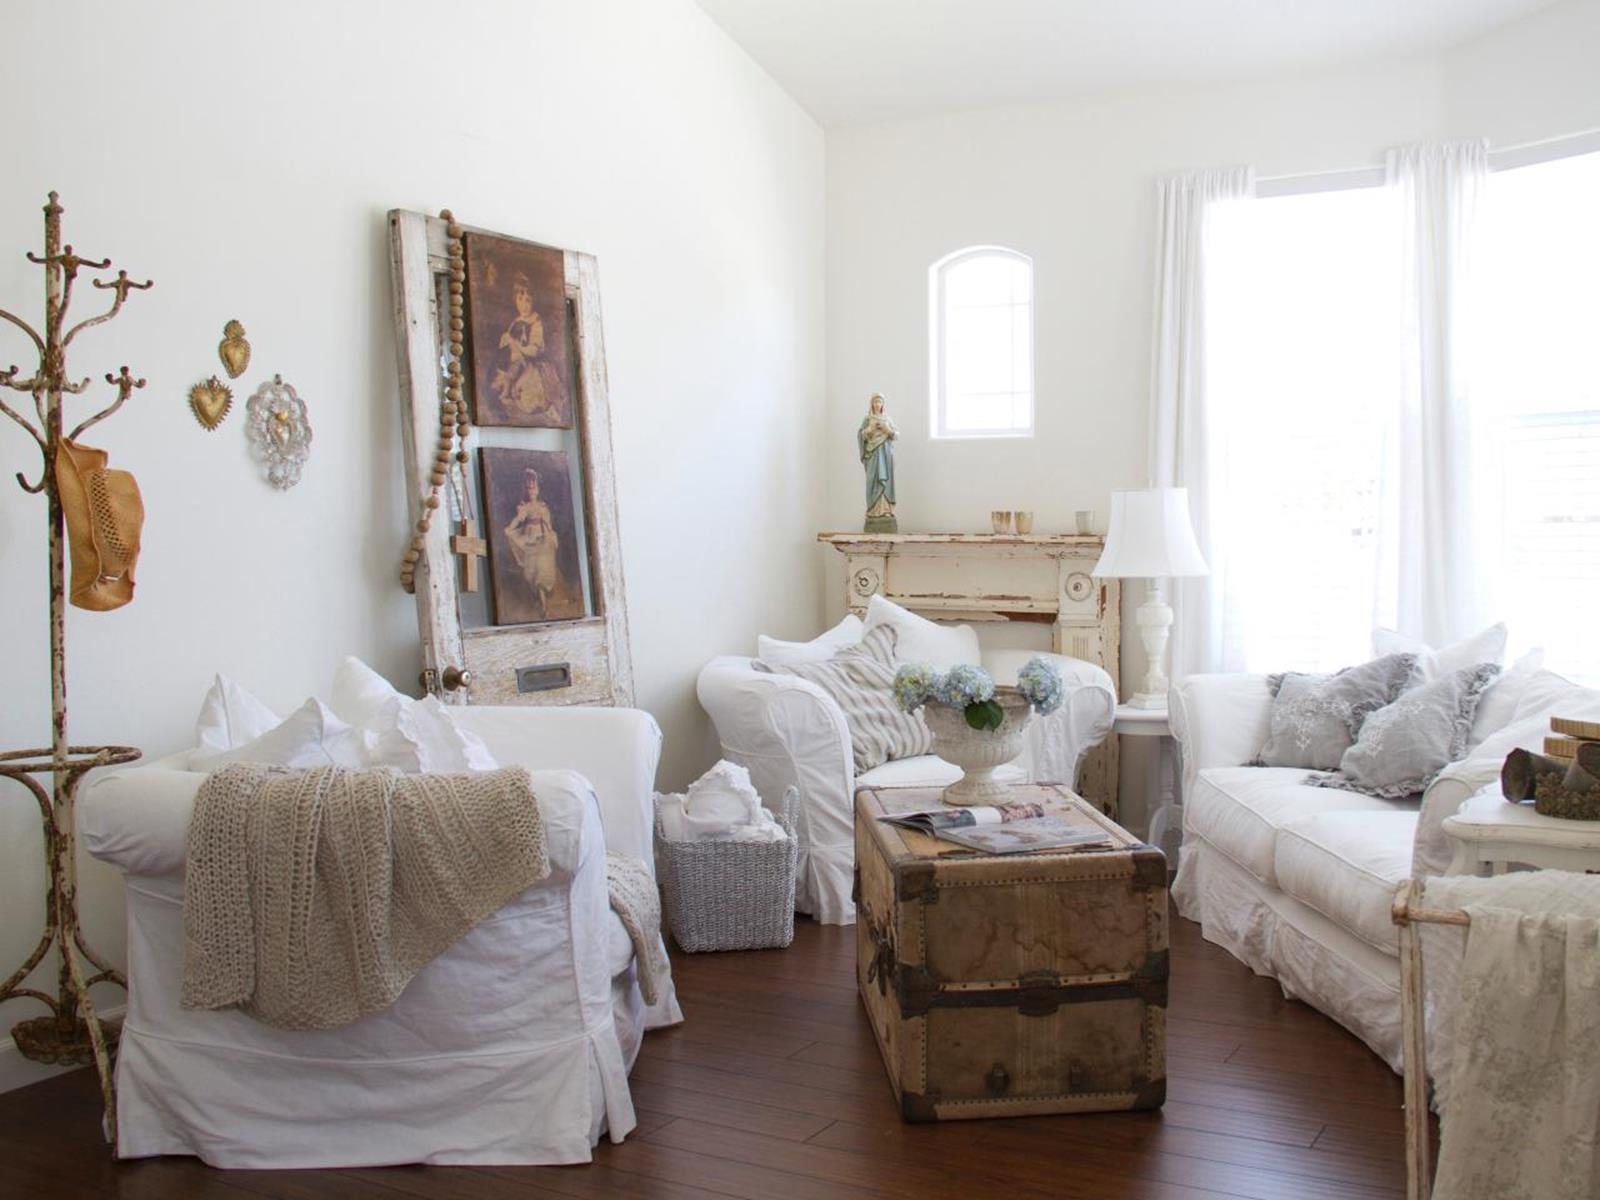 Shabby Chic Living Room Decorating on A Budget 38